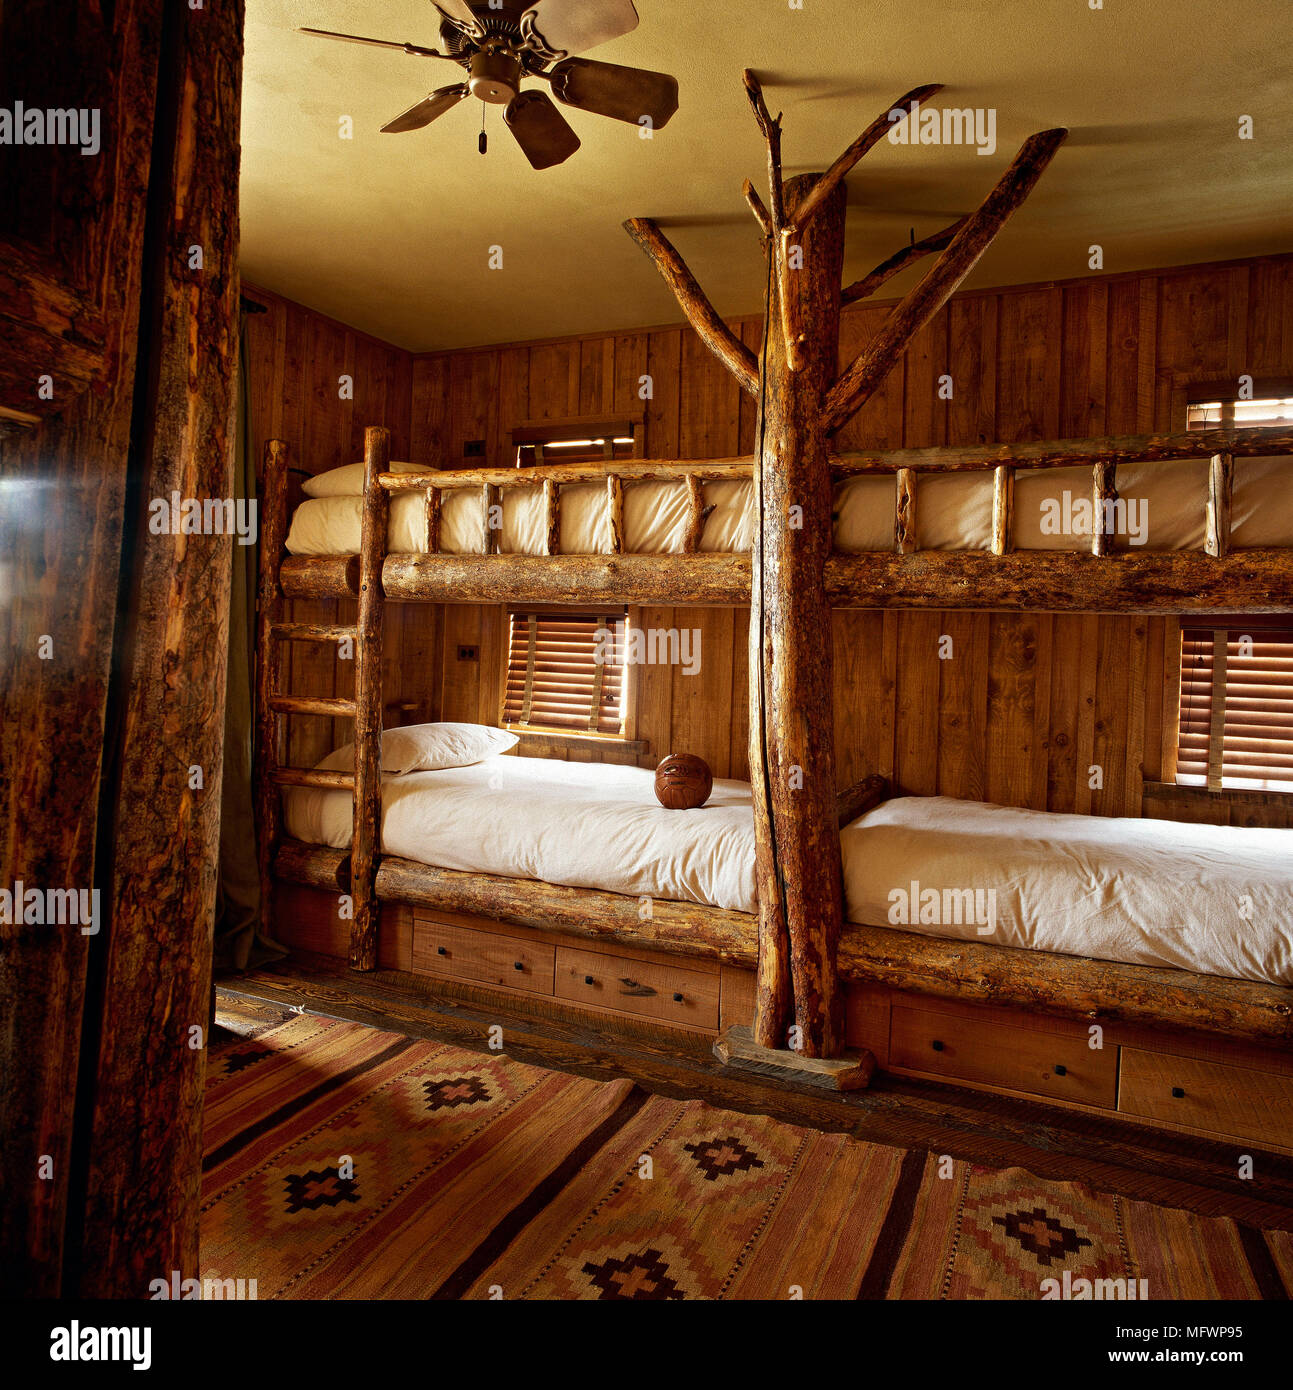 Bedroom With Timber Bunk Beds And Wooden Panelling On Wall Stock Photo Alamy